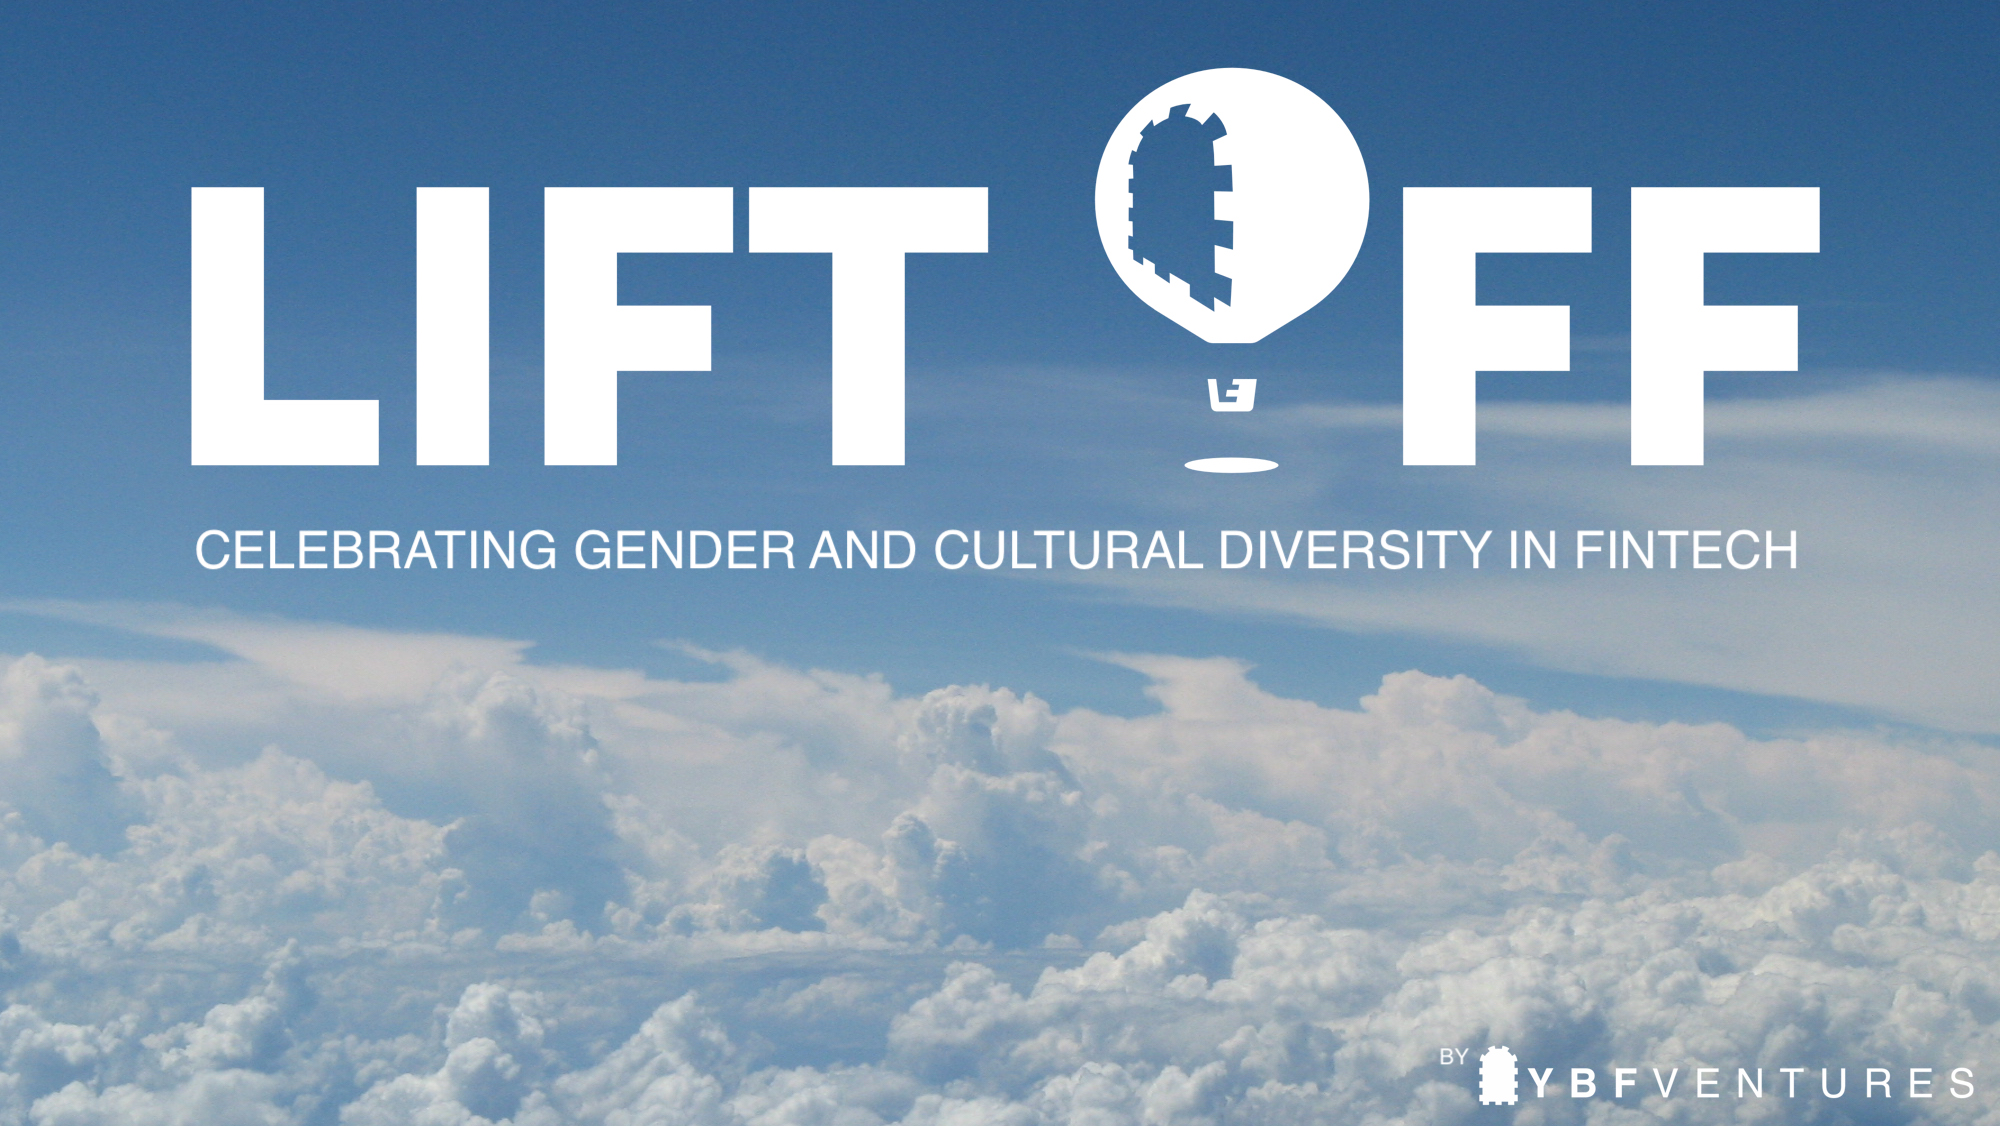 Lift Off Awards - Lift Off is a three-tiered program designed by YBF Ventures as part of the YBF Fintech Hub. It includes a women's mentoring program, a scholarship program and the Lift Off Awards, which highlight gender and cultural diversity in fintech.The second annual Lift Off Awards will take place 21 November in the Ballroom at YBF Melbourne, 7:00pm – 9:30pm. This event is by invitation only. Interested? Learn more here.